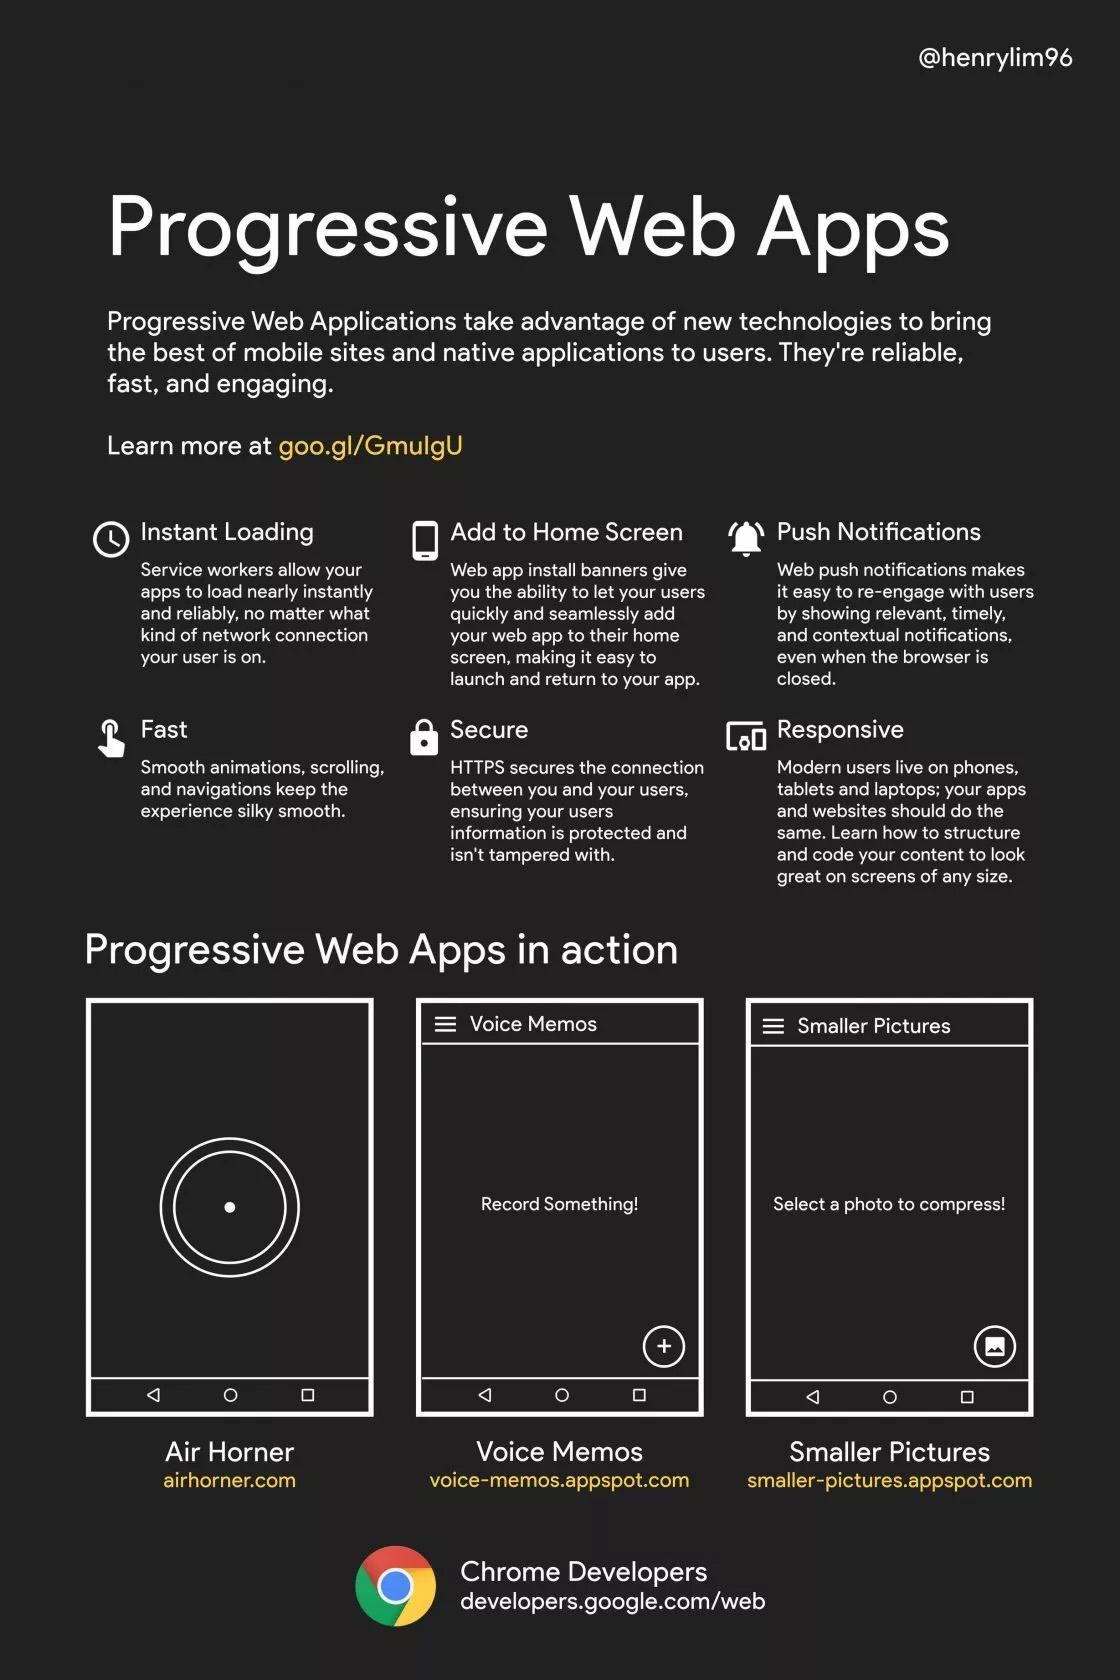 Progressive Web Apps (PWA) Infographic